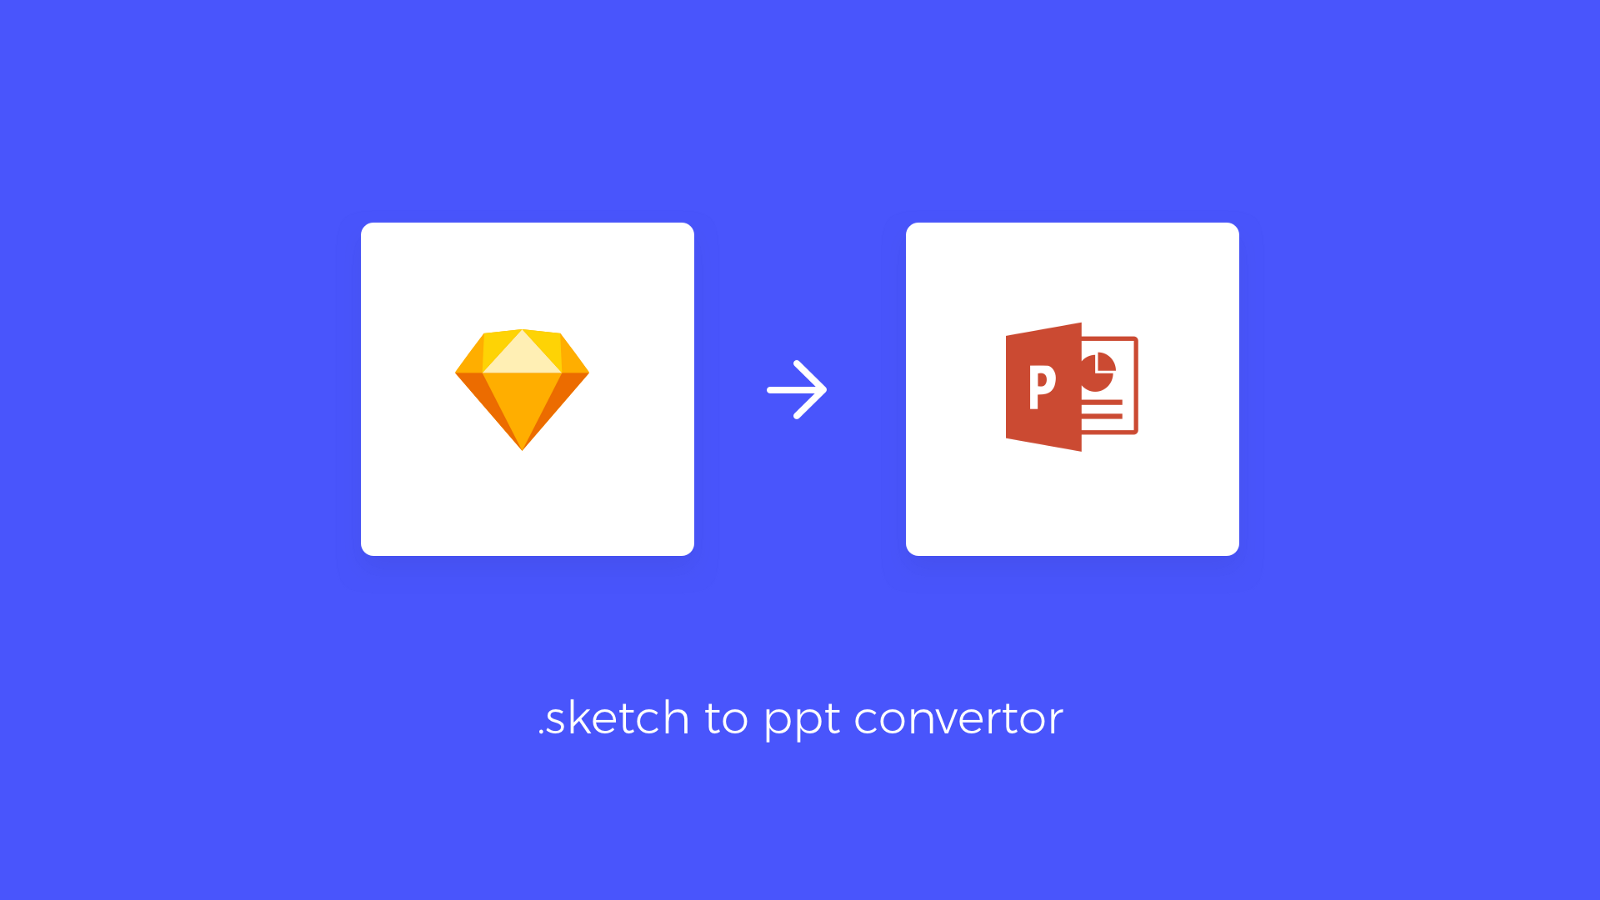 time to design ppt key presentations right in sketch and convert